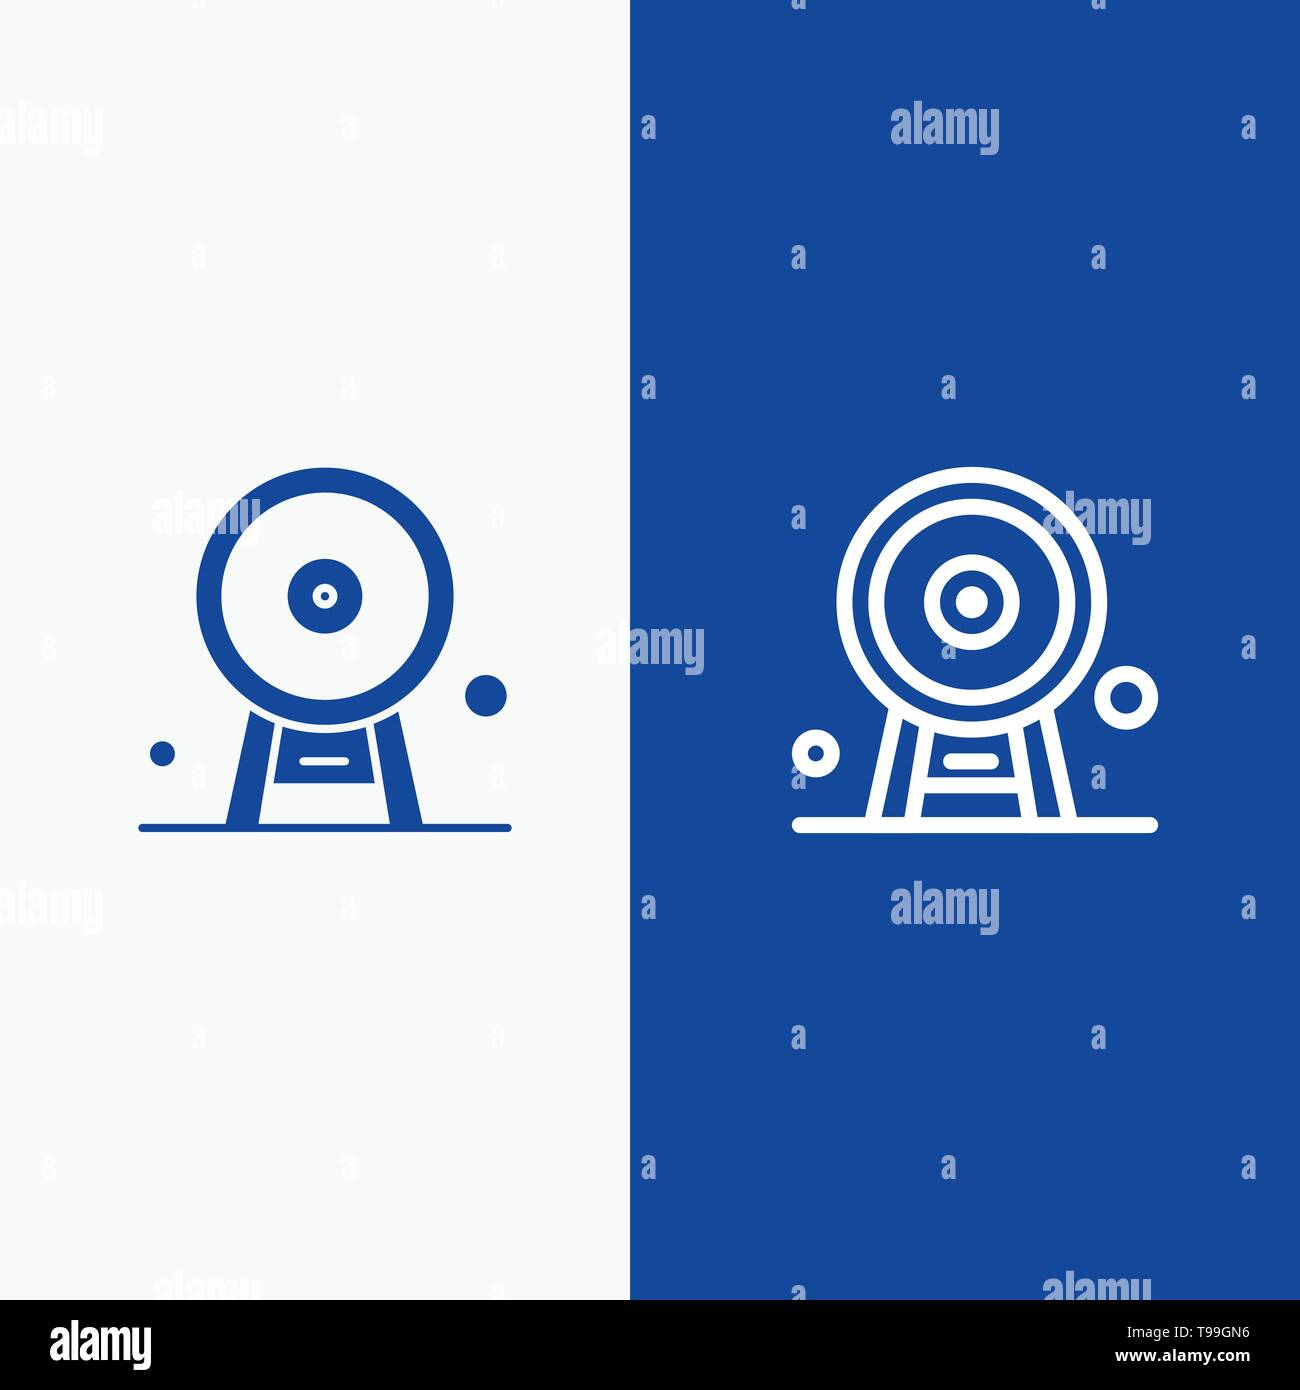 Architecture, England, Ferris Wheel, Landmark, London Eye, Line and Glyph Solid icon Blue banner Line and Glyph Solid icon Blue banner - Stock Image